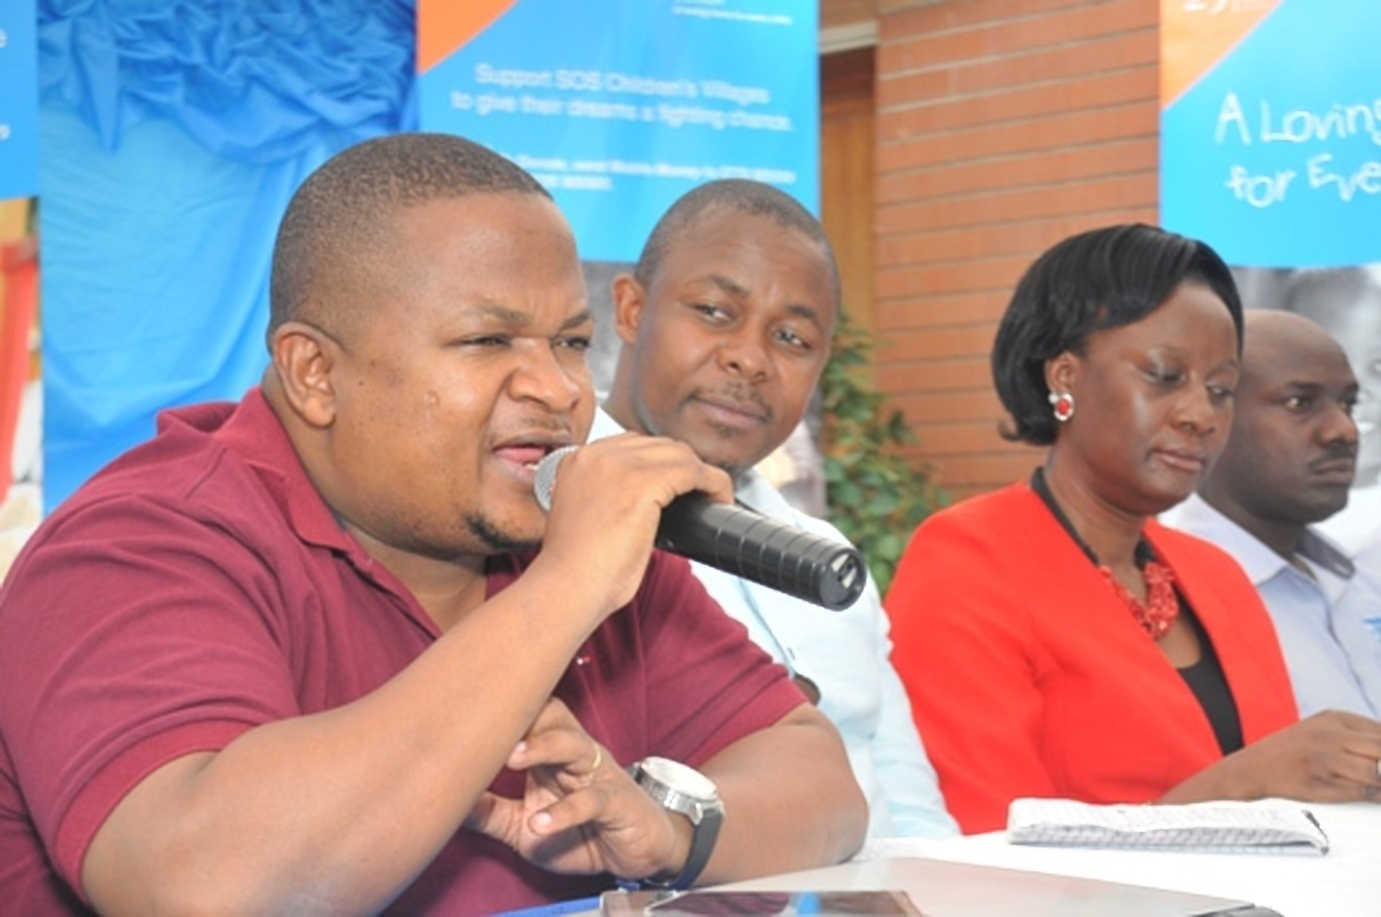 PR/Media consultant, Kyamutetera stresses a point at a press conference recently (COURTESY PHOTO)